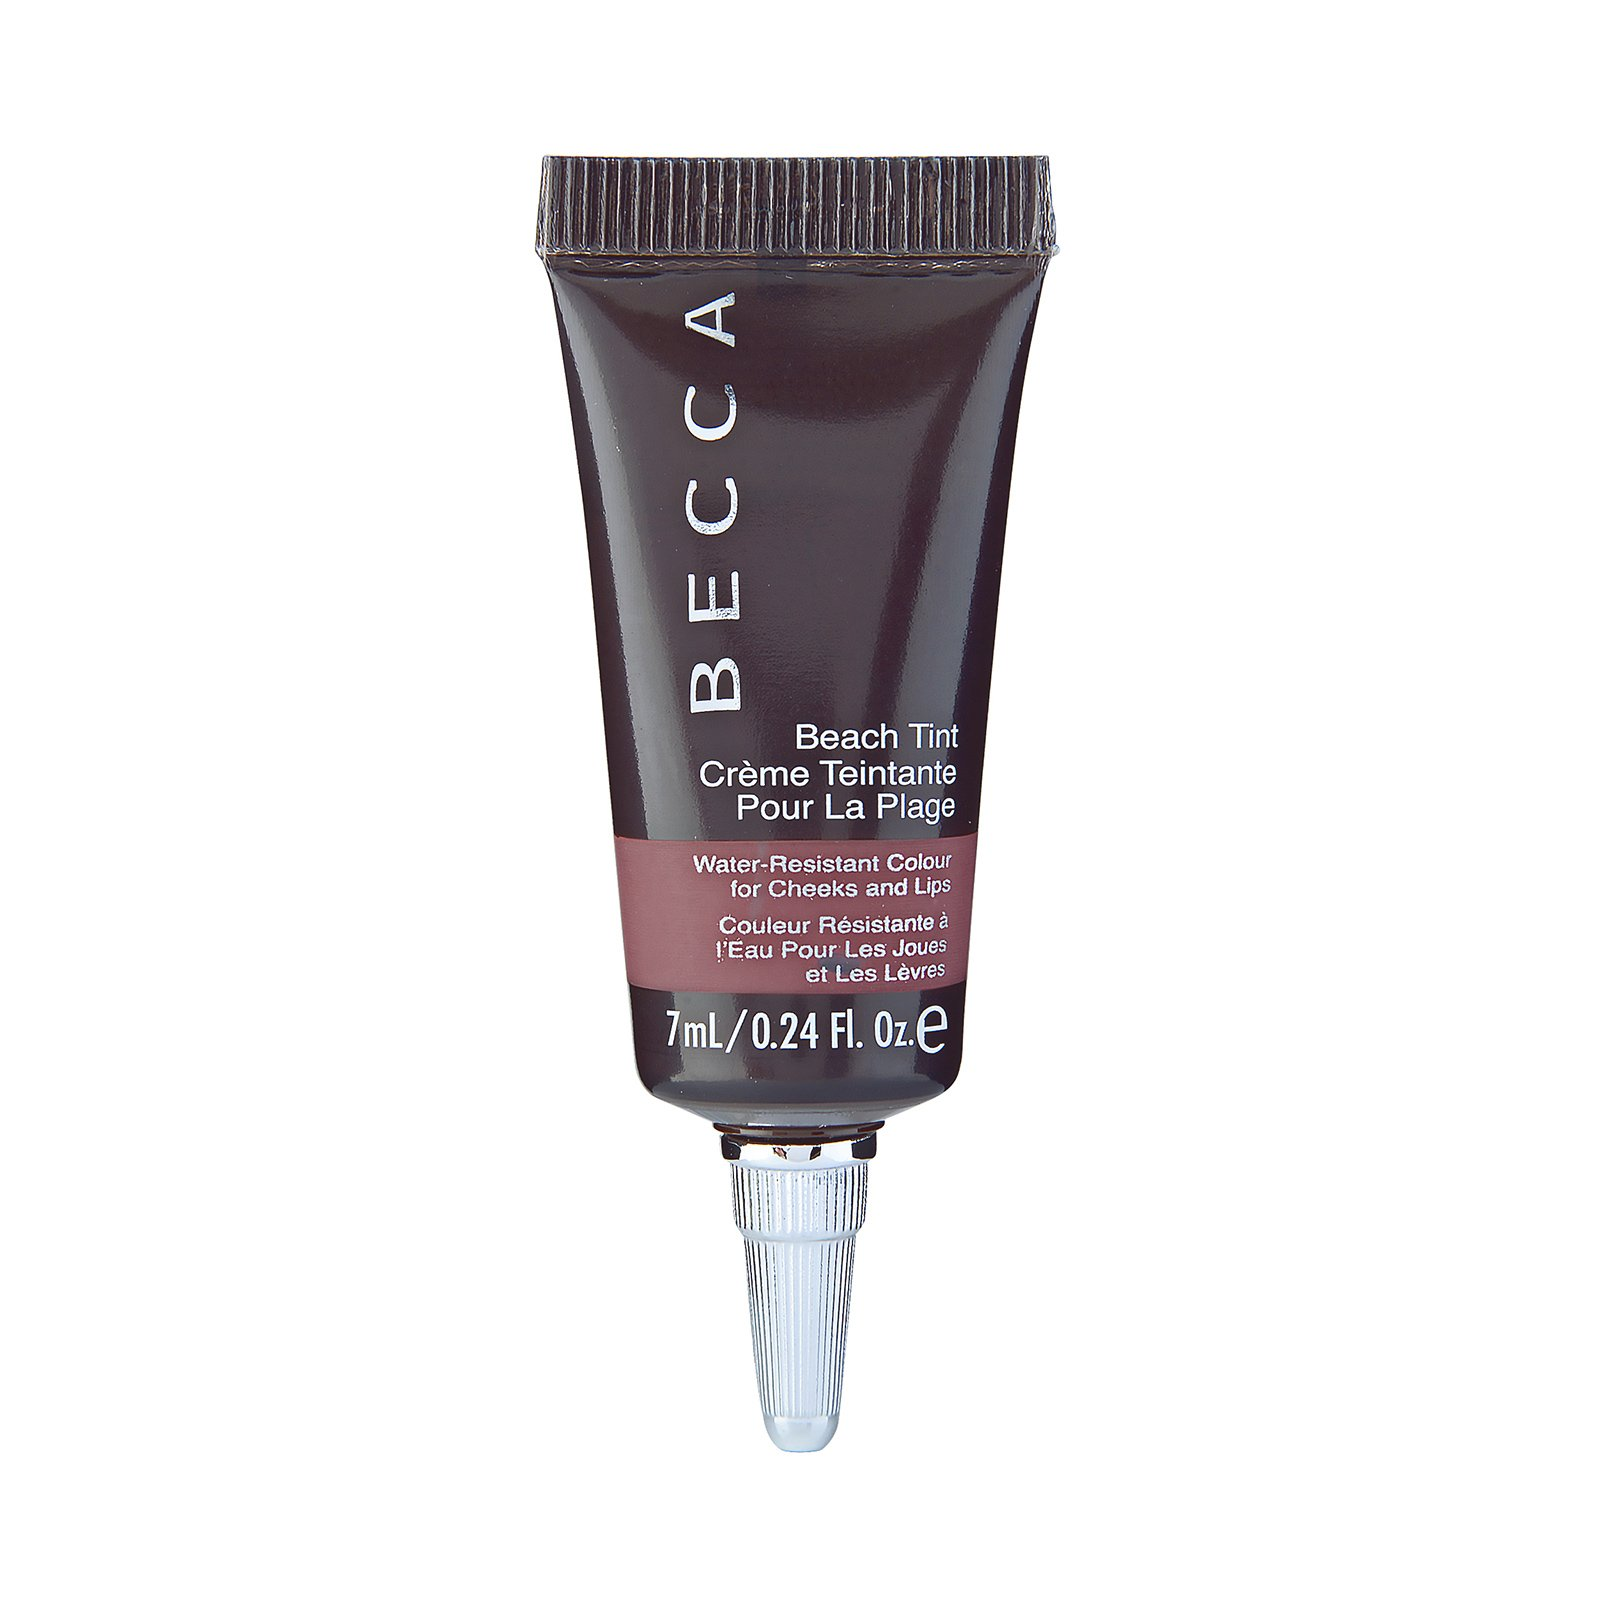 Becca Beach Tint Watermelon, 0.24oz, 7ml